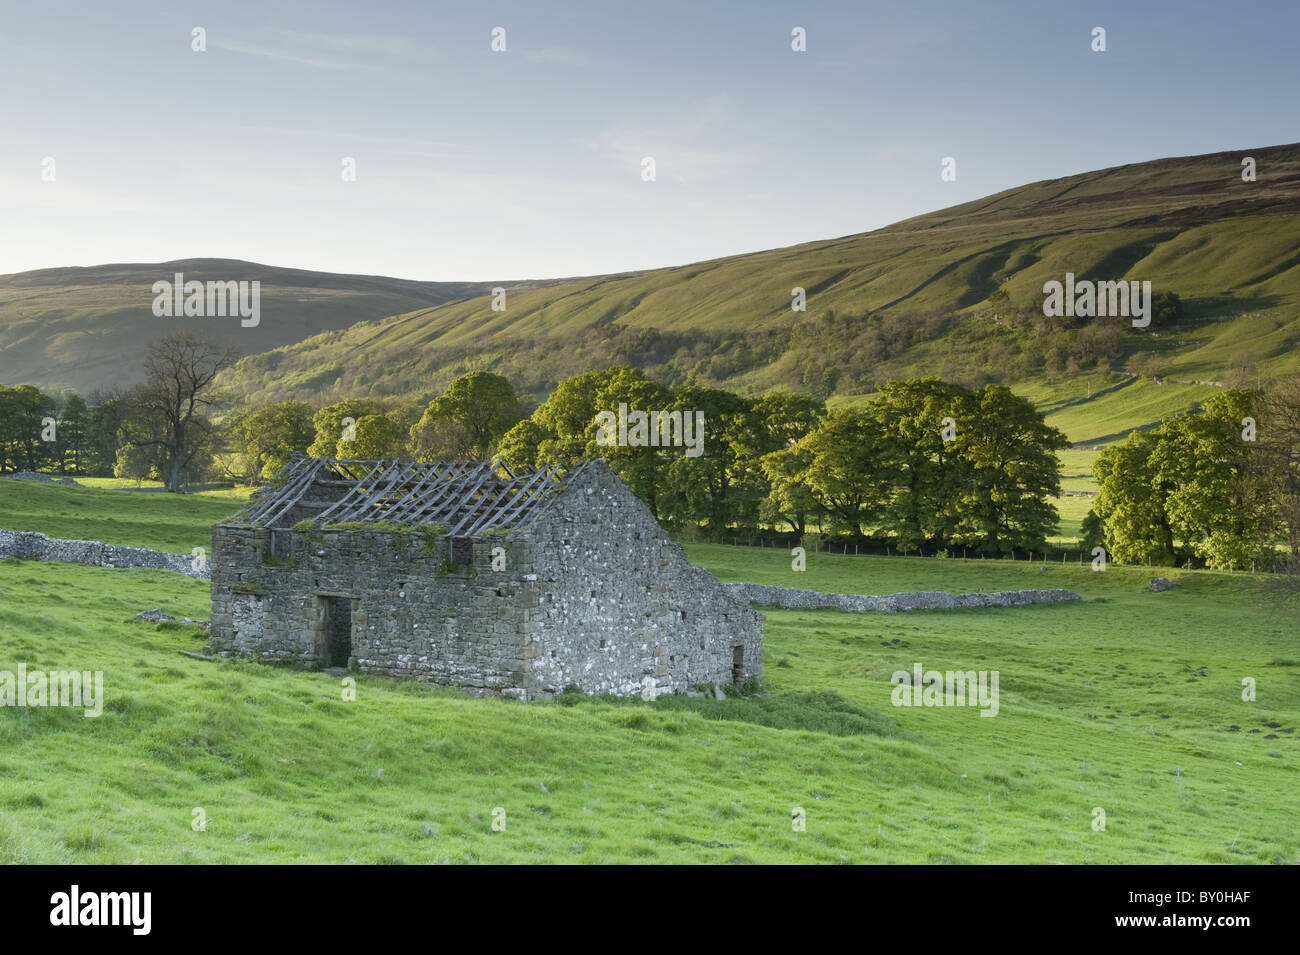 Isolated old stone field barn ruin, scenic hillside valley slope, farmland & sunlit upland hills - Arncliffe, Littondale, Yorkshire Dales, England, UK Stock Photo